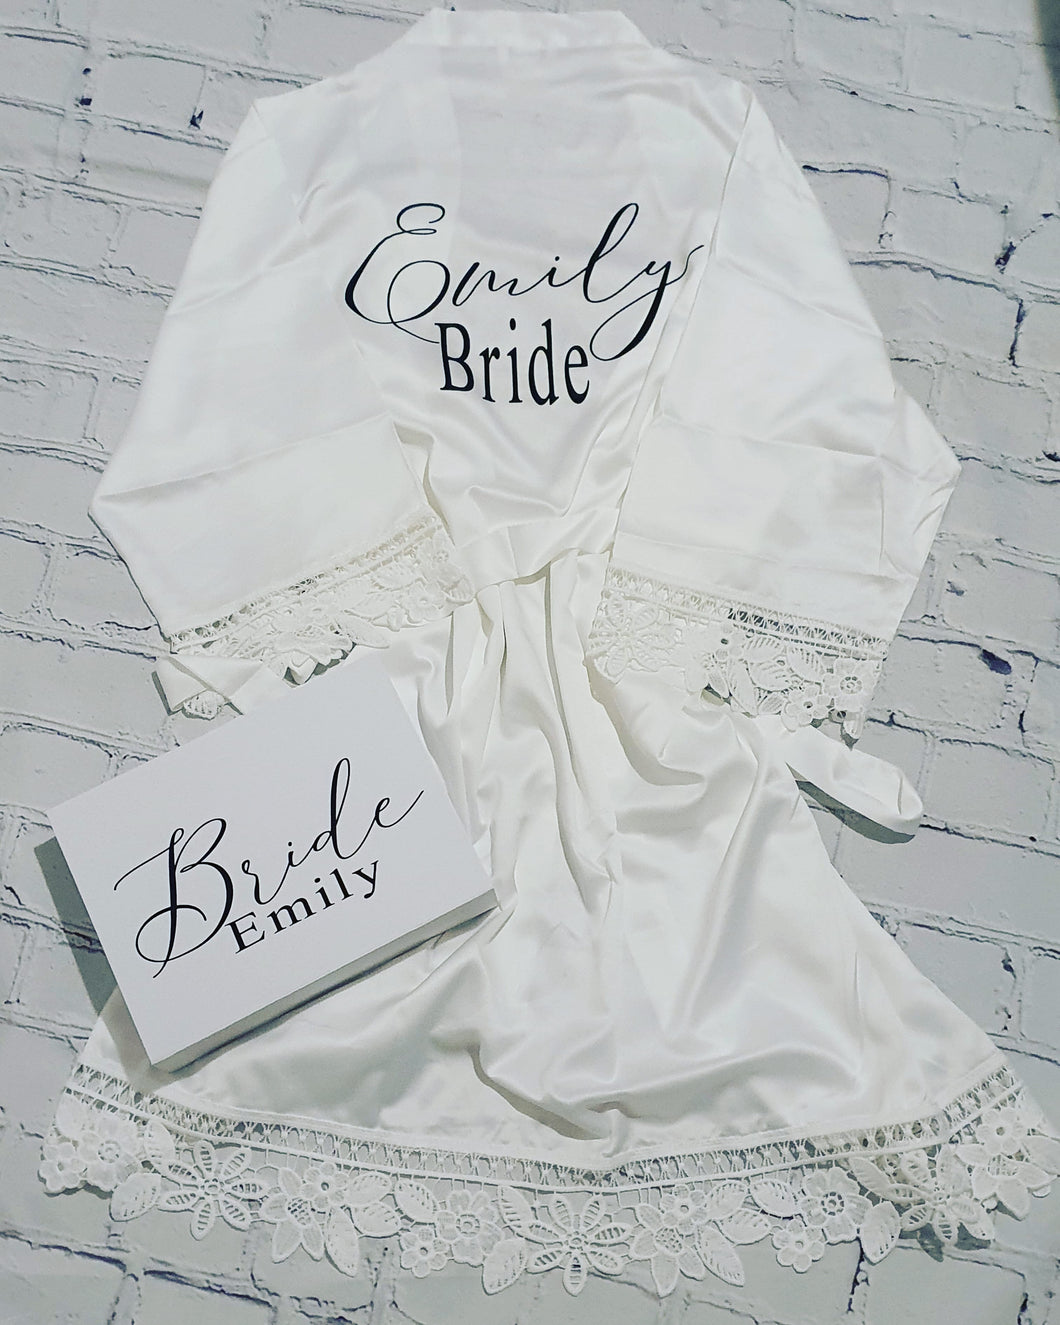 Bride & bridesmaid gift box package